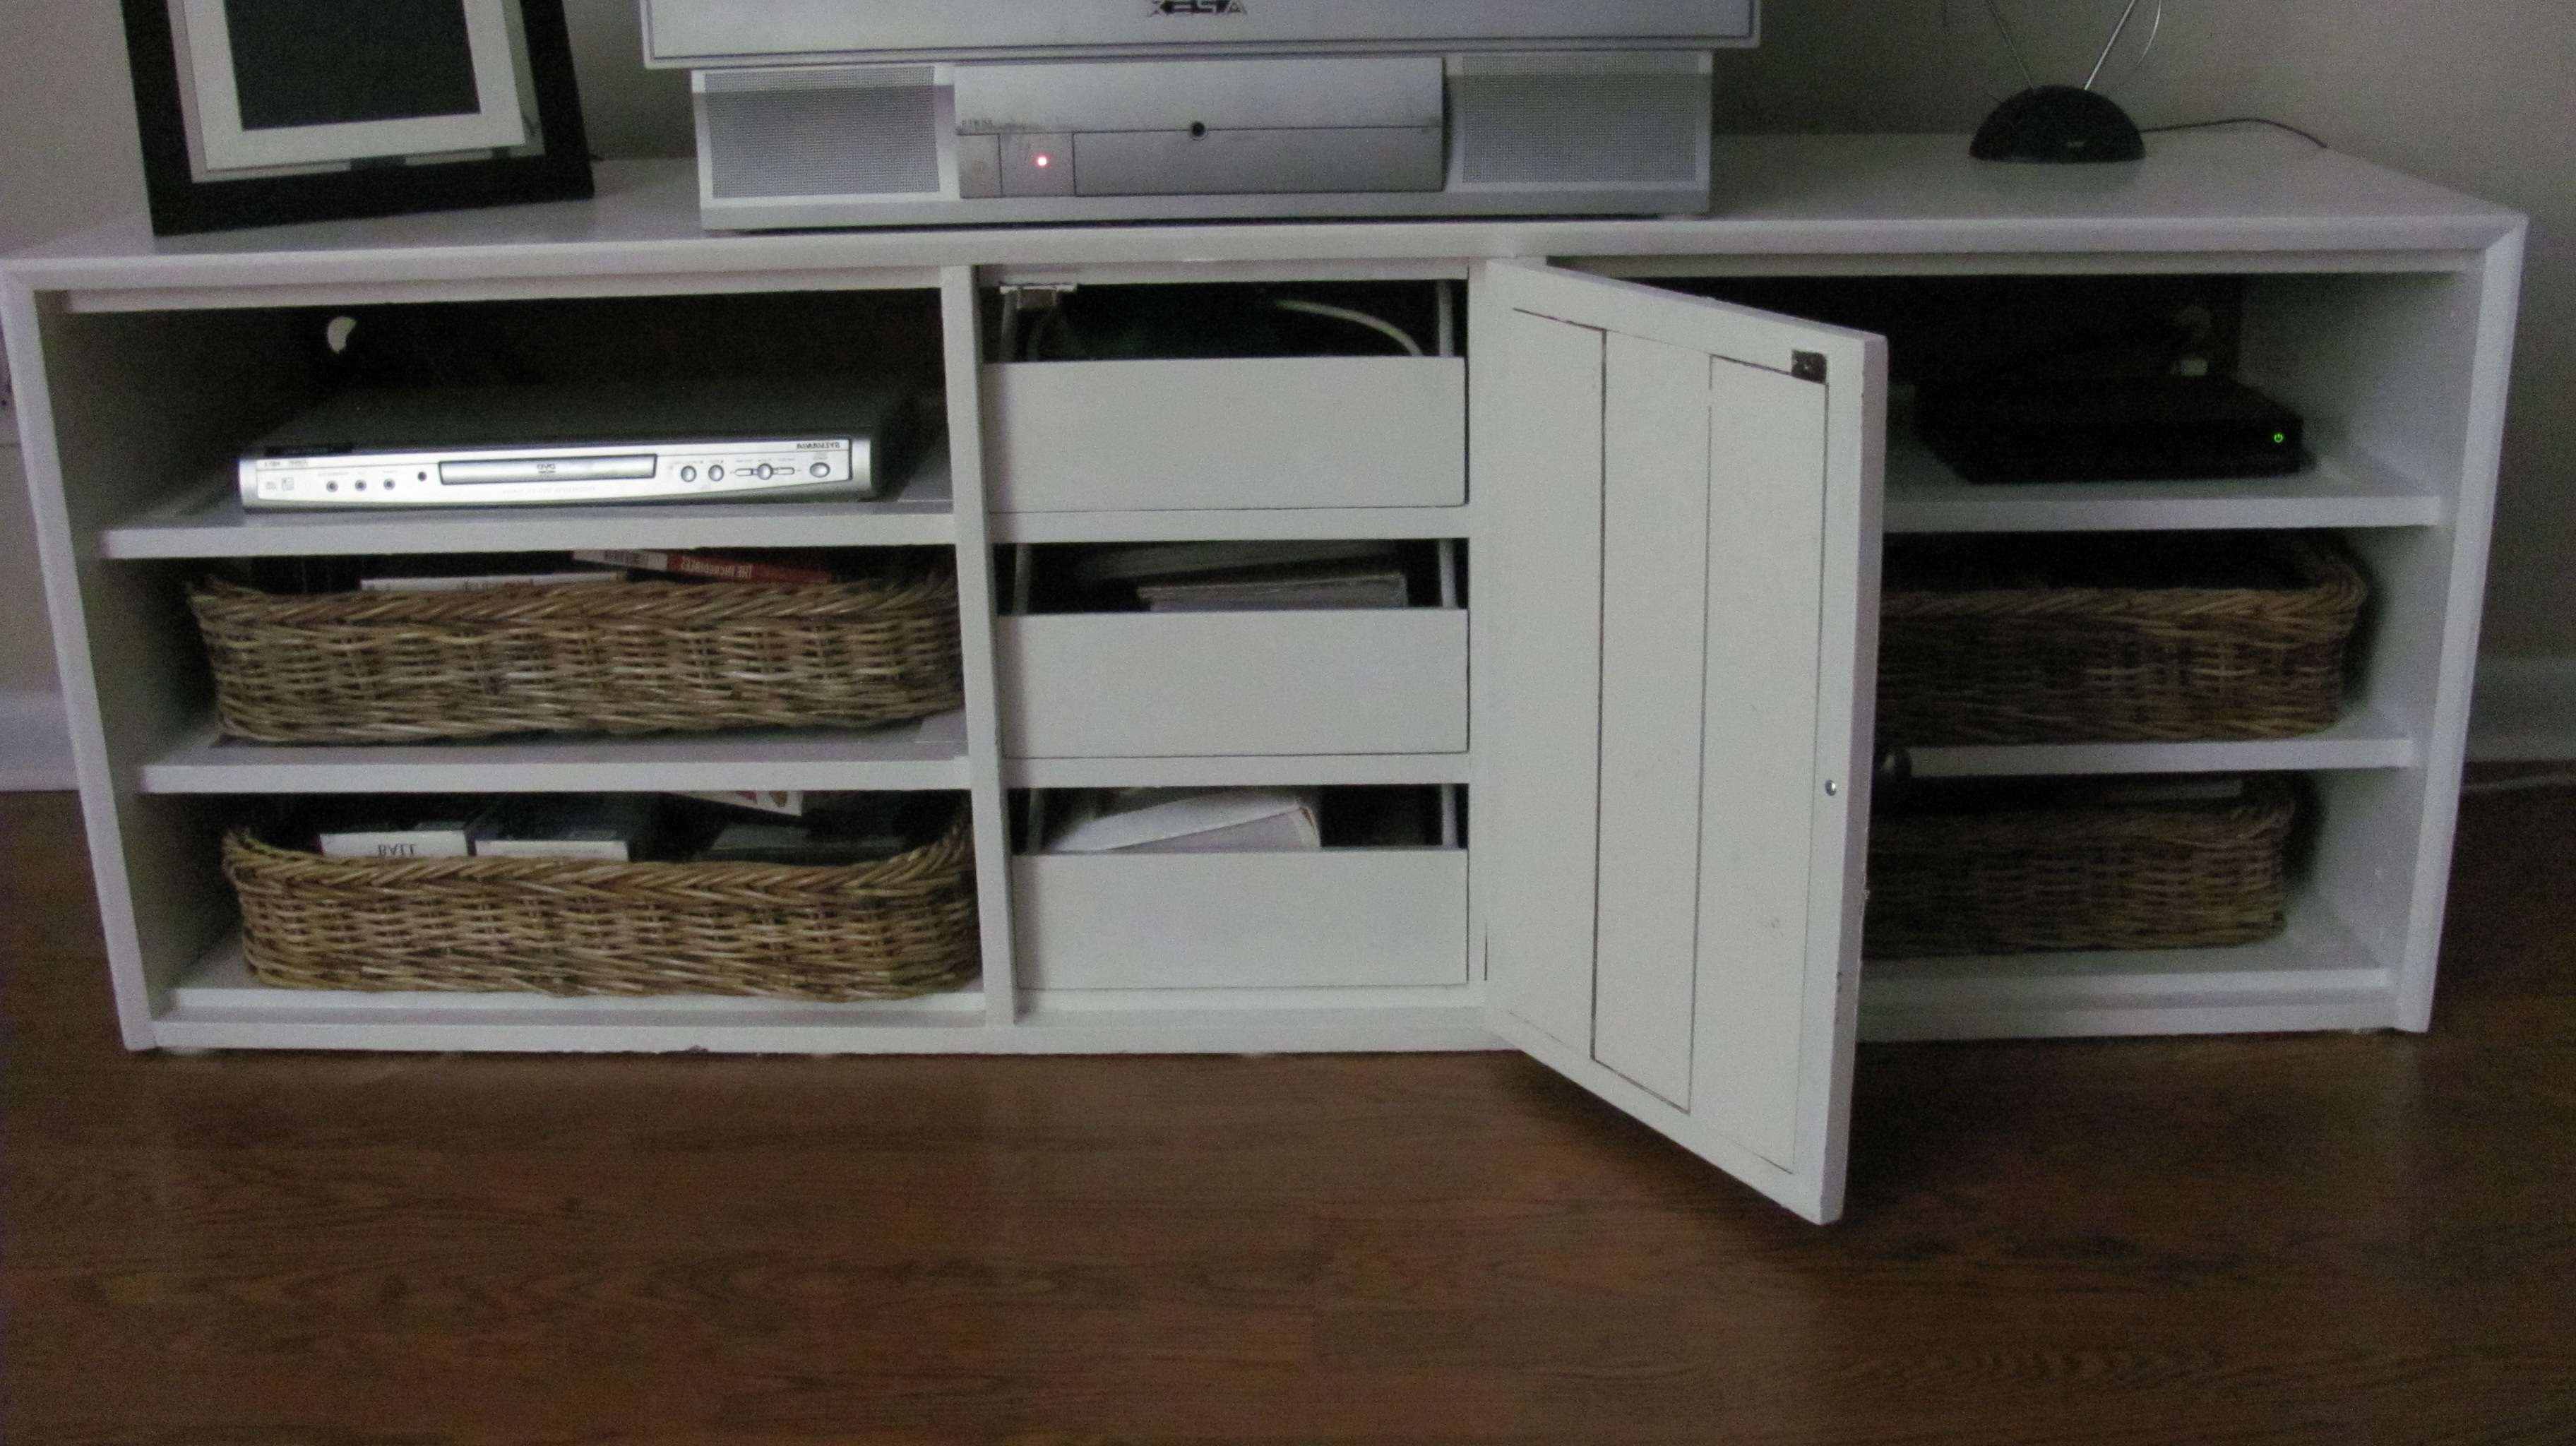 An Oak Furniture Tv Stand With Dresser Drawers | Johnfante Dressers Inside Tv Stands With Baskets (View 6 of 15)